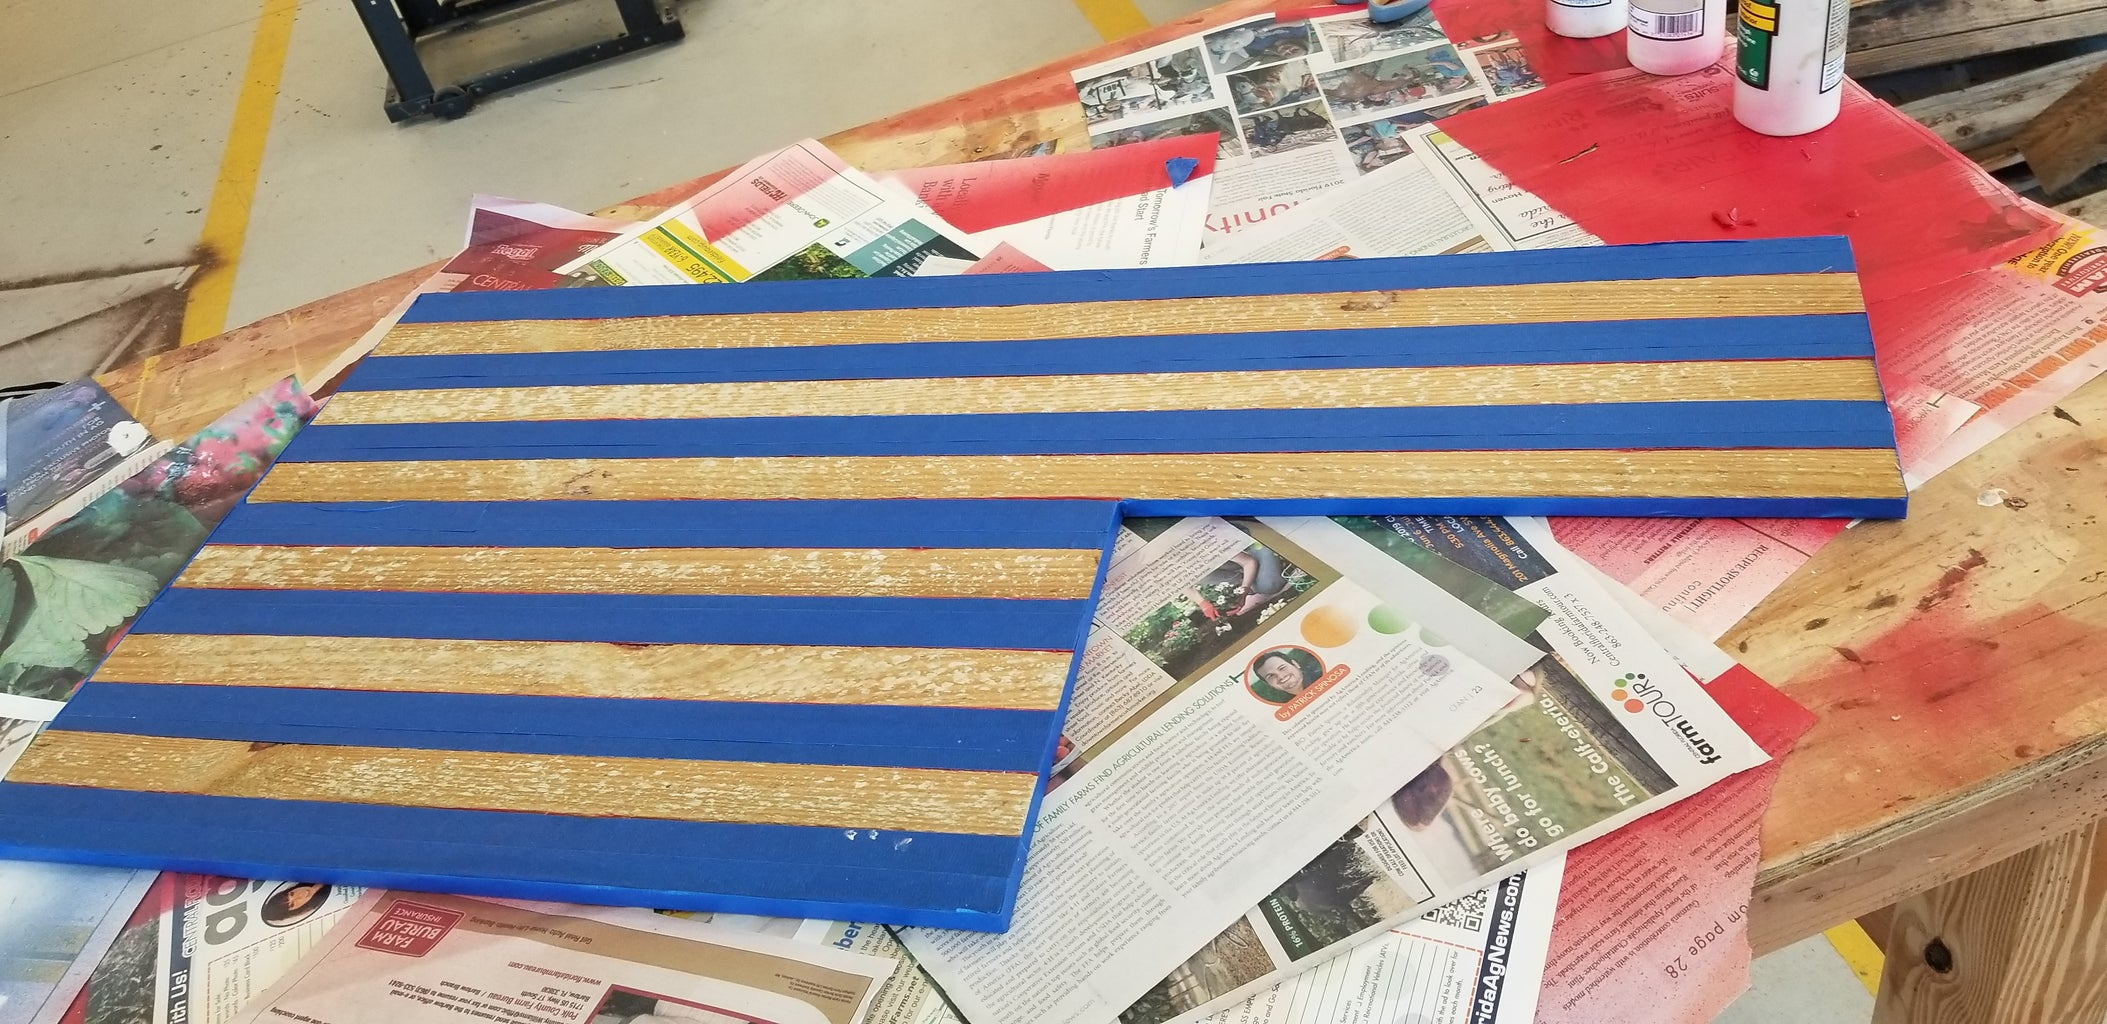 Then Tape Off the Red Stripes